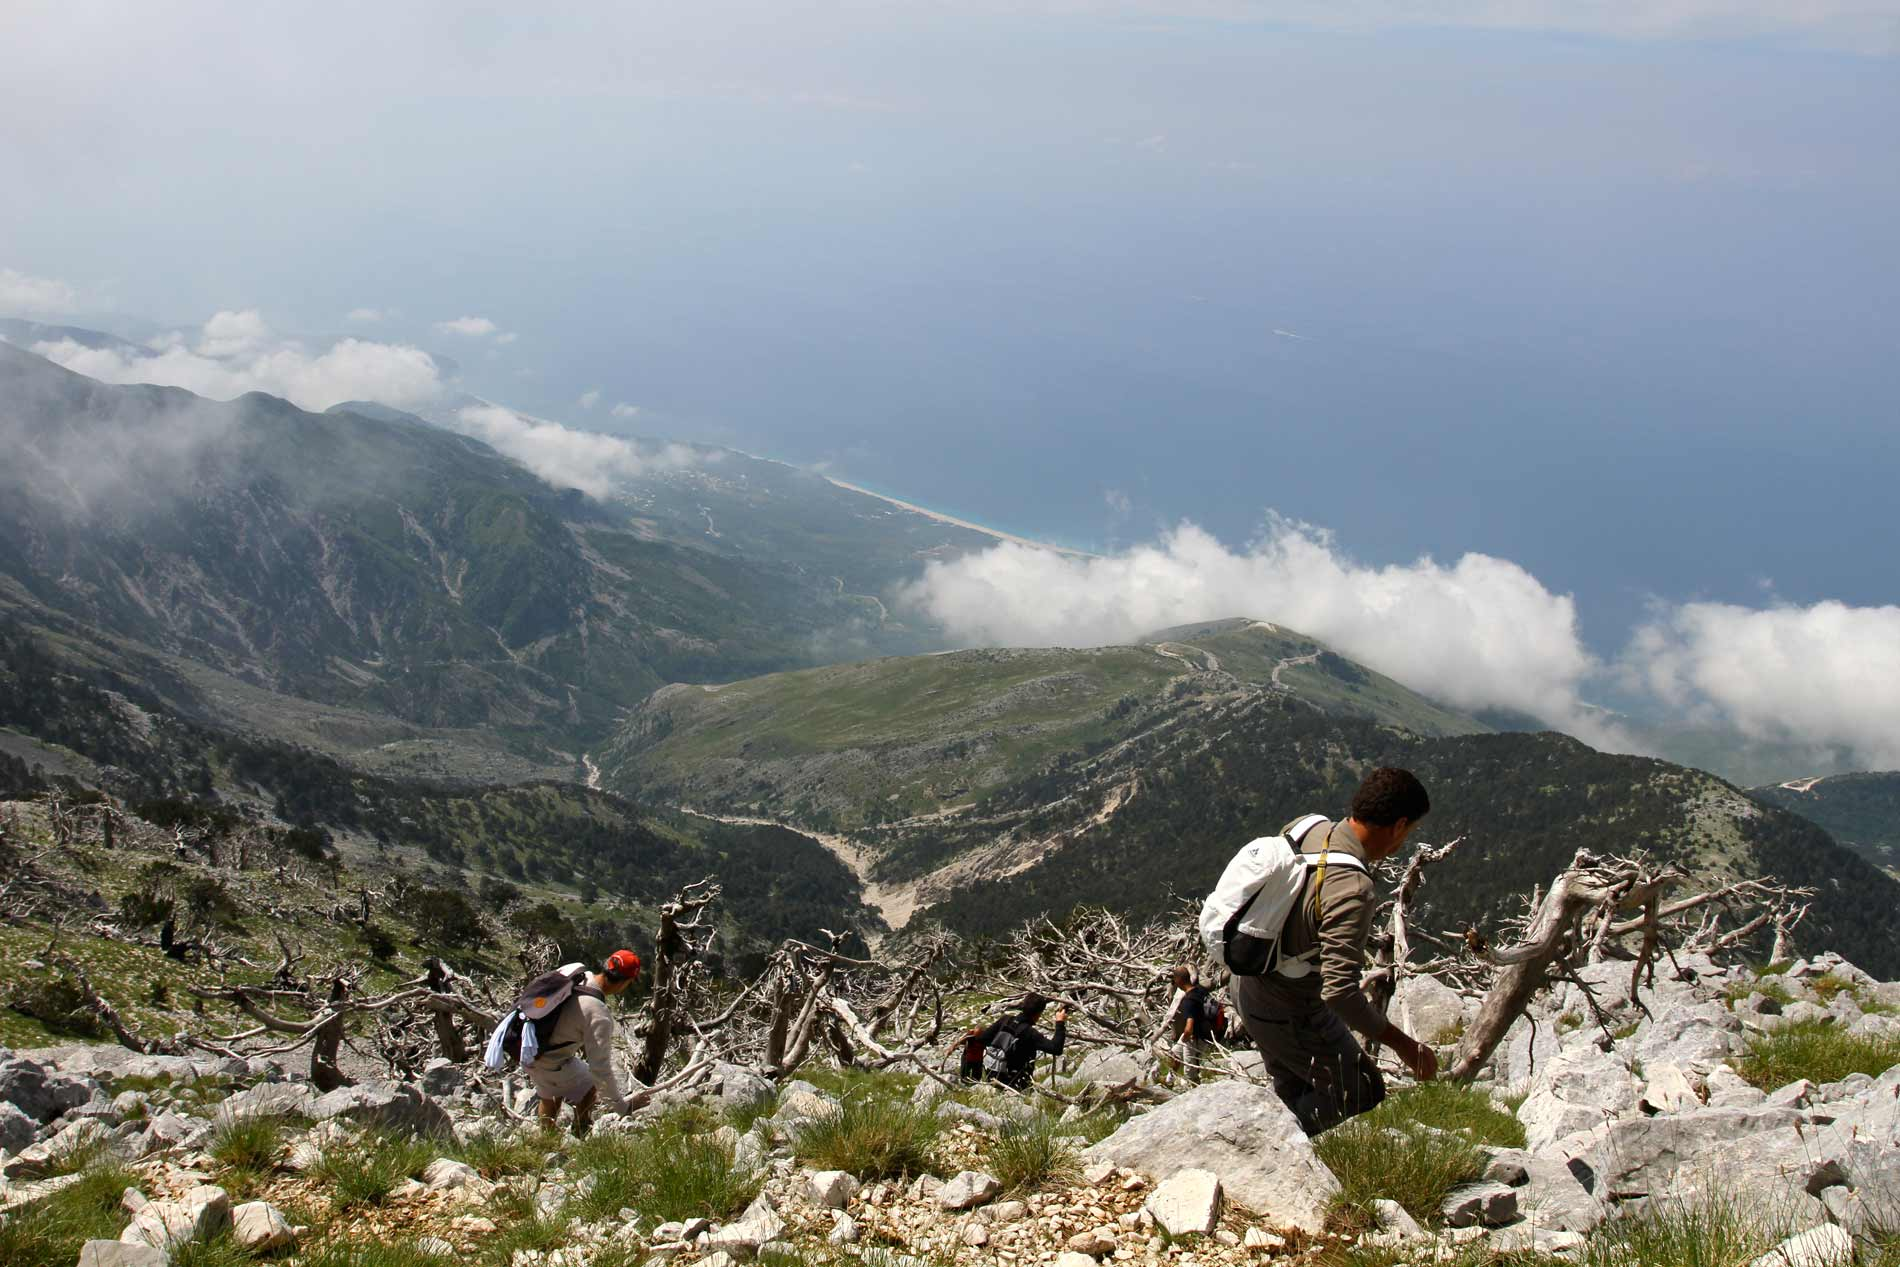 Hiking in South Albania is for people who enjoy a balanced mix of hikes, cultural visits and relaxation in the beautiful South of Albania.